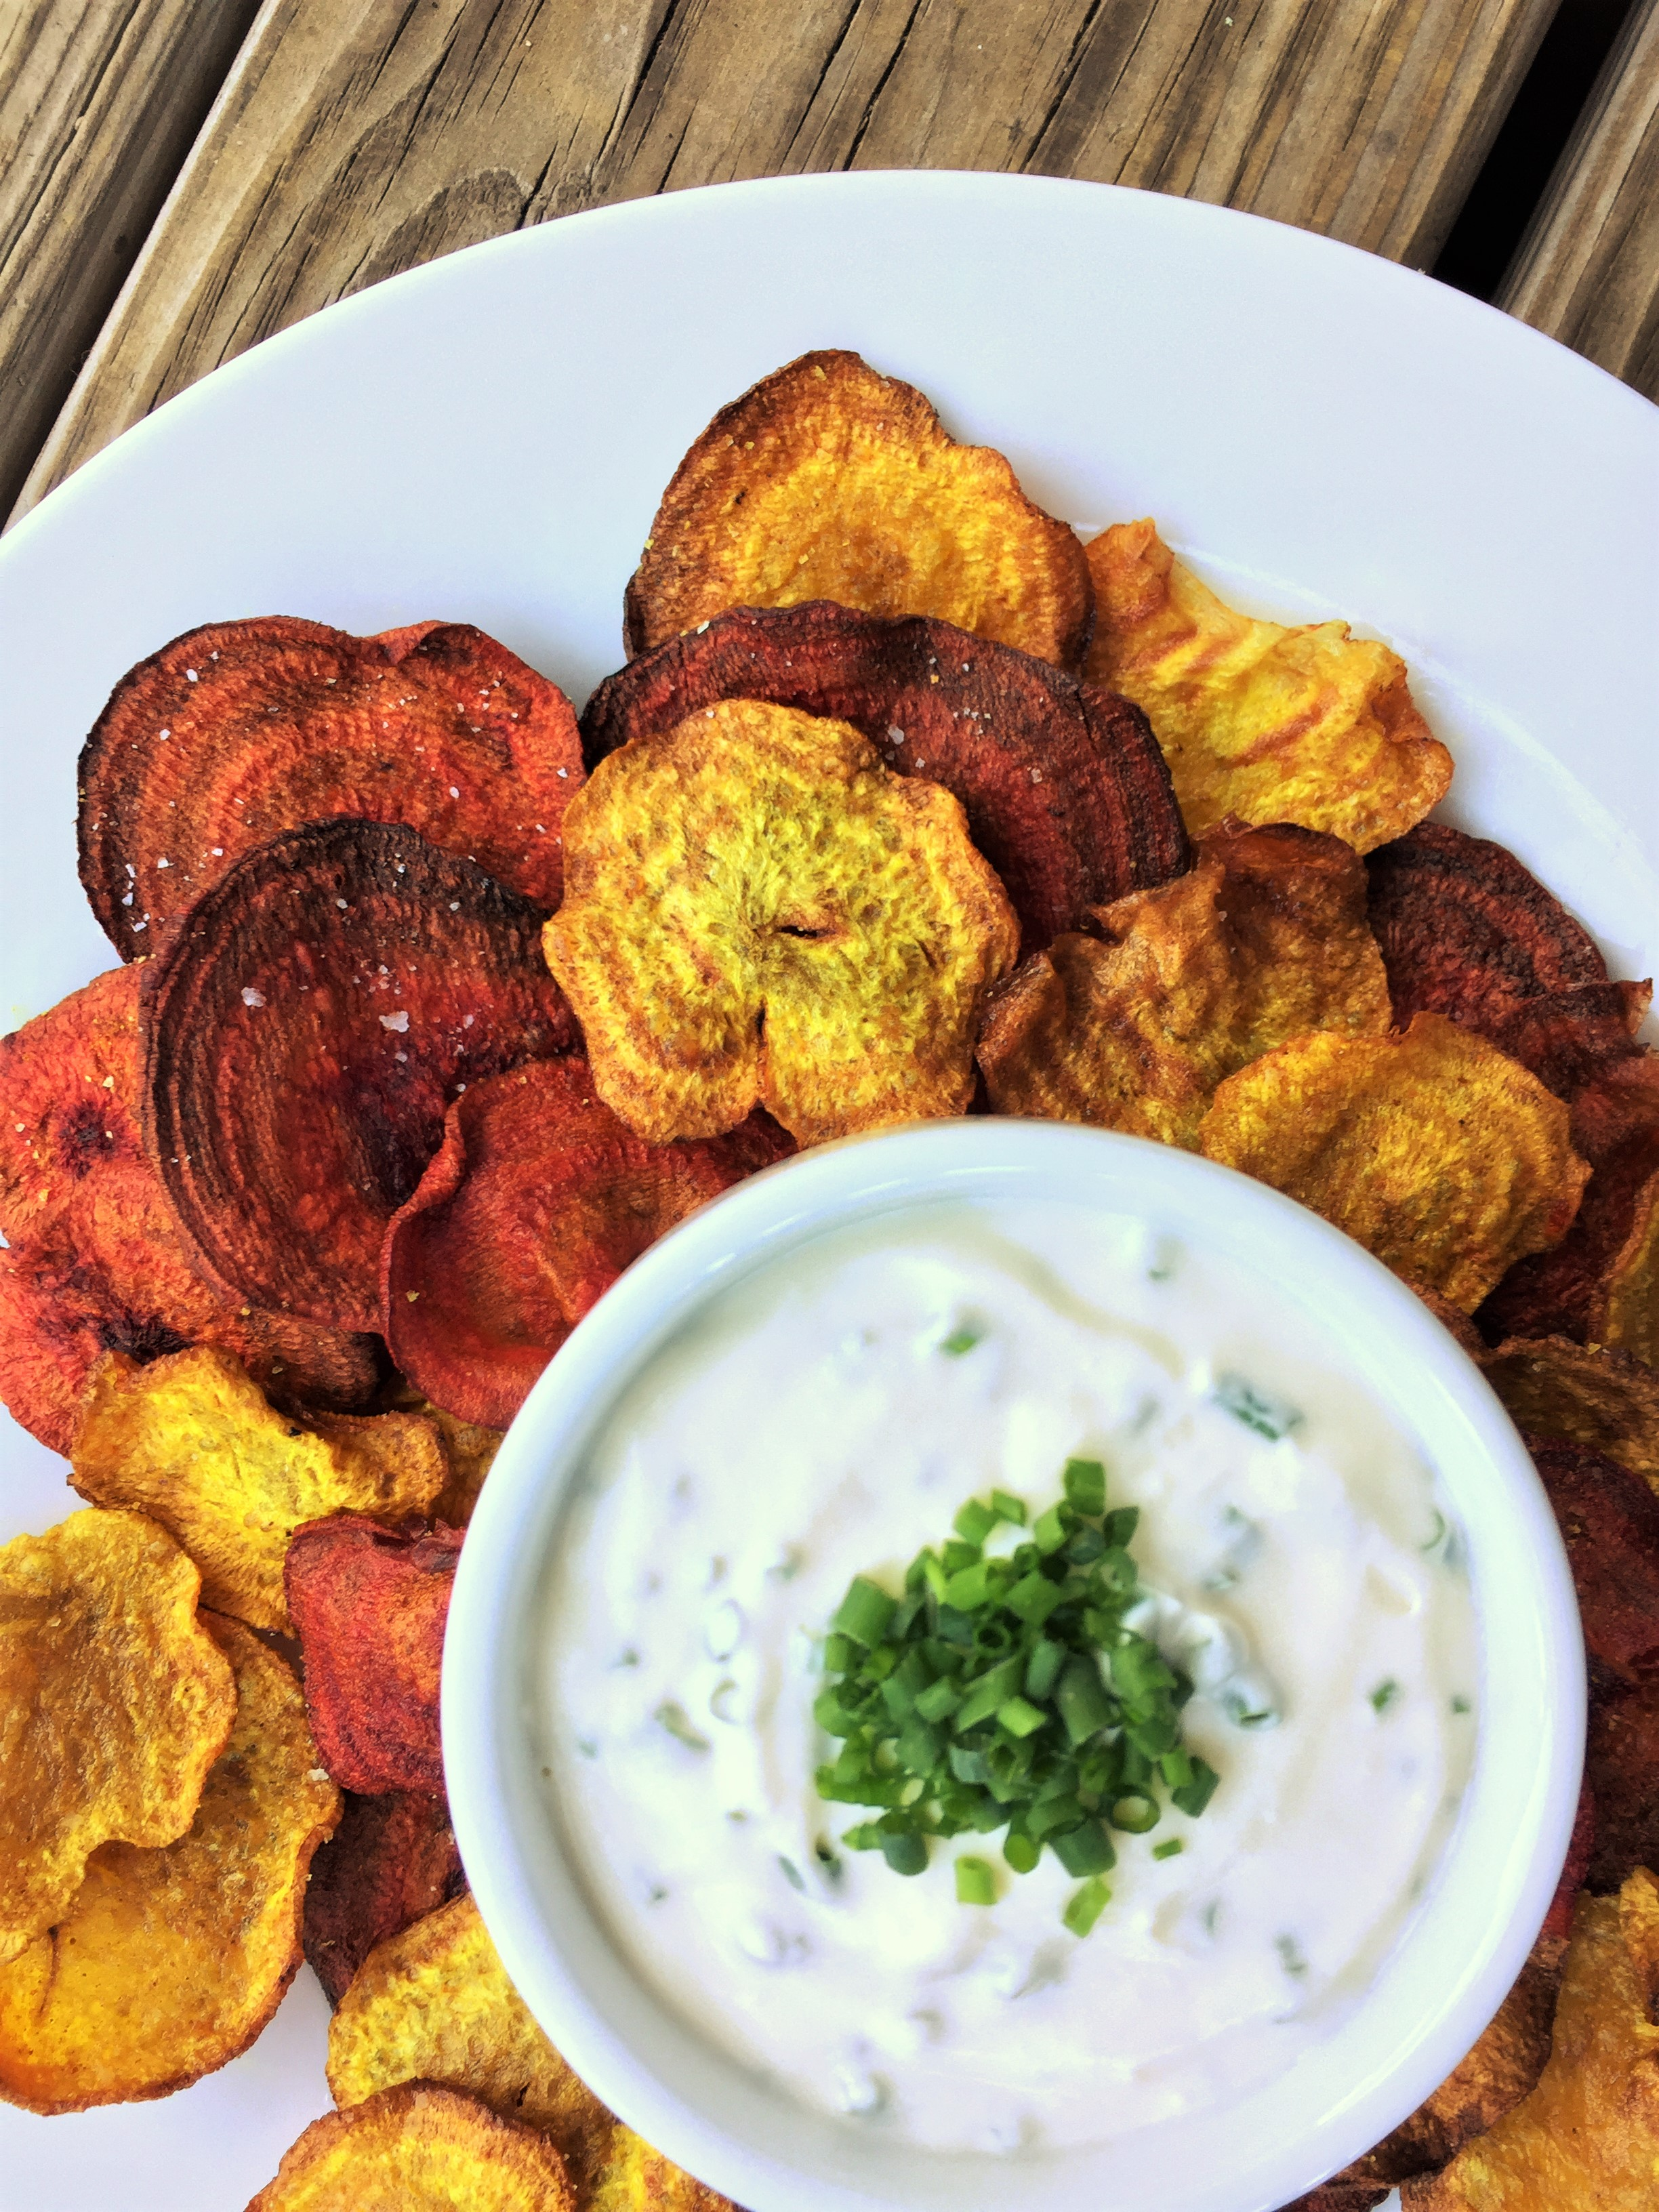 Creamy Goat Cheese Dip served with  Curried Beet Chips  in the Adventure Kitchen.